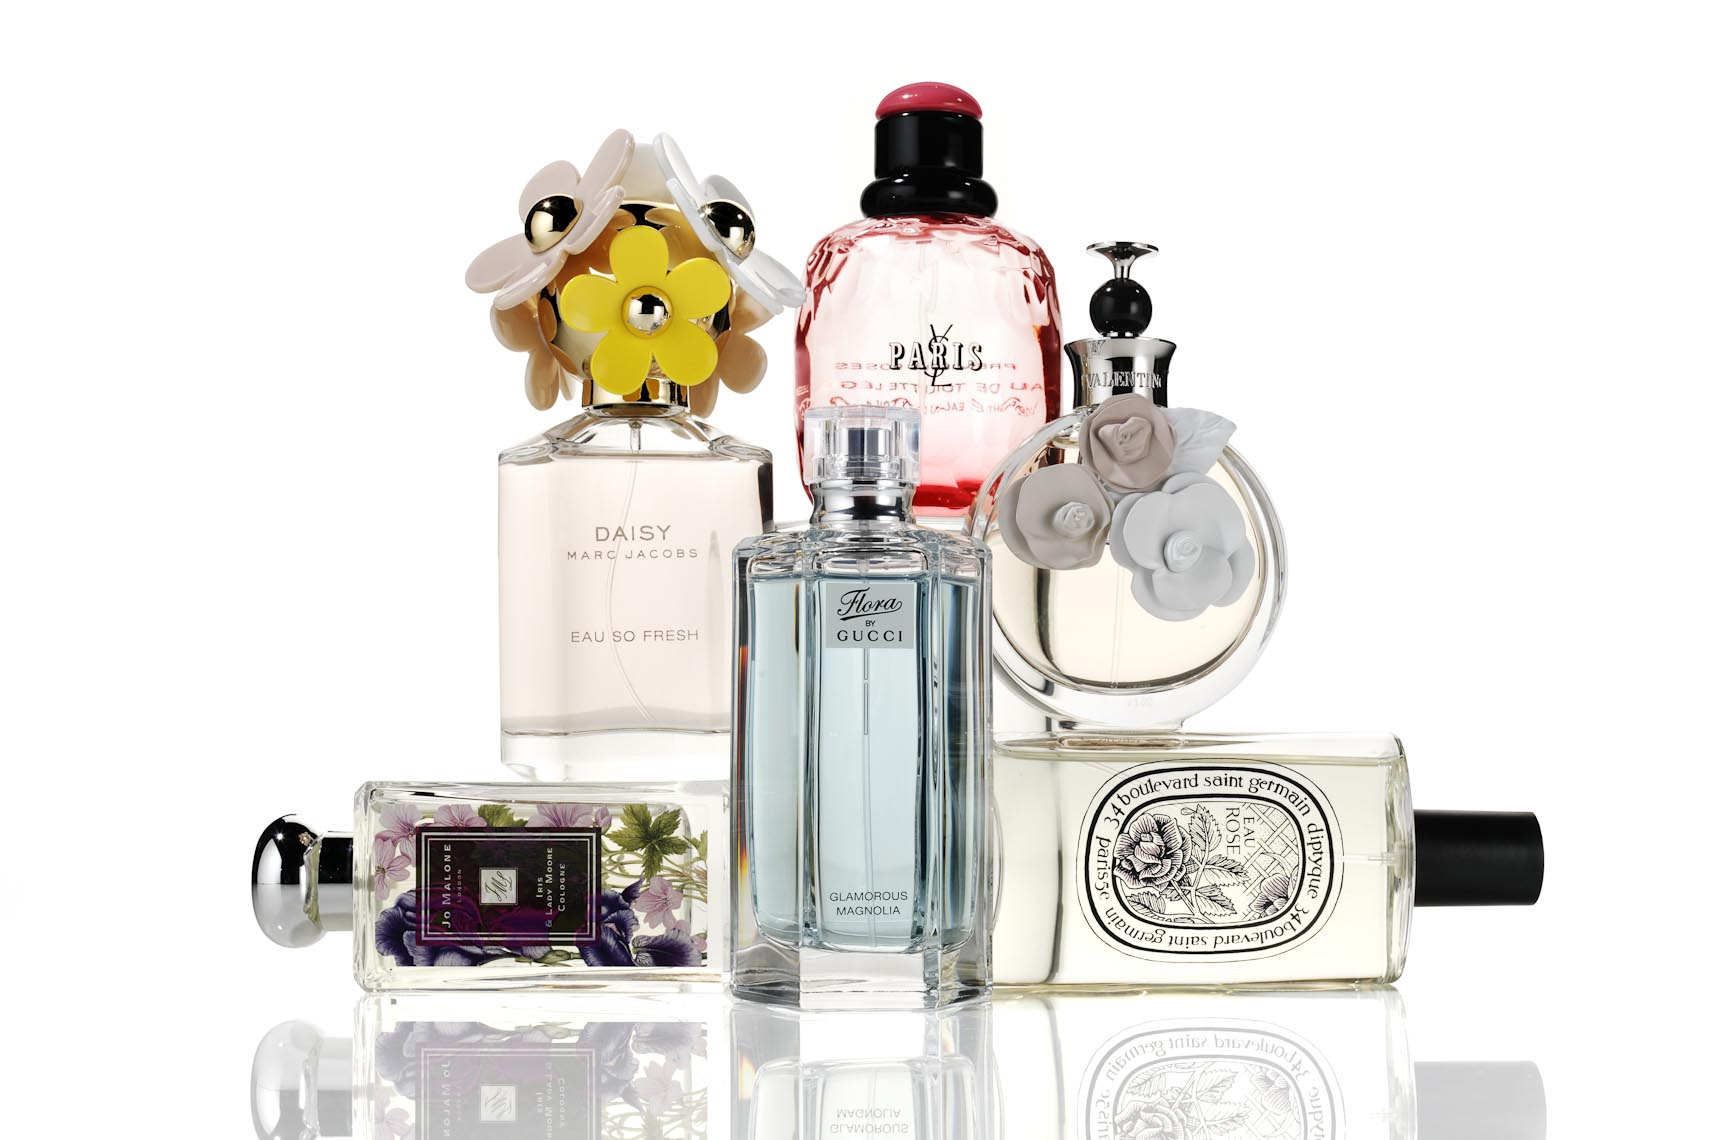 Mike-Lorrig_PFB_1438083_1221026-cosmetics-still-life-fragrance-bottles-on-white